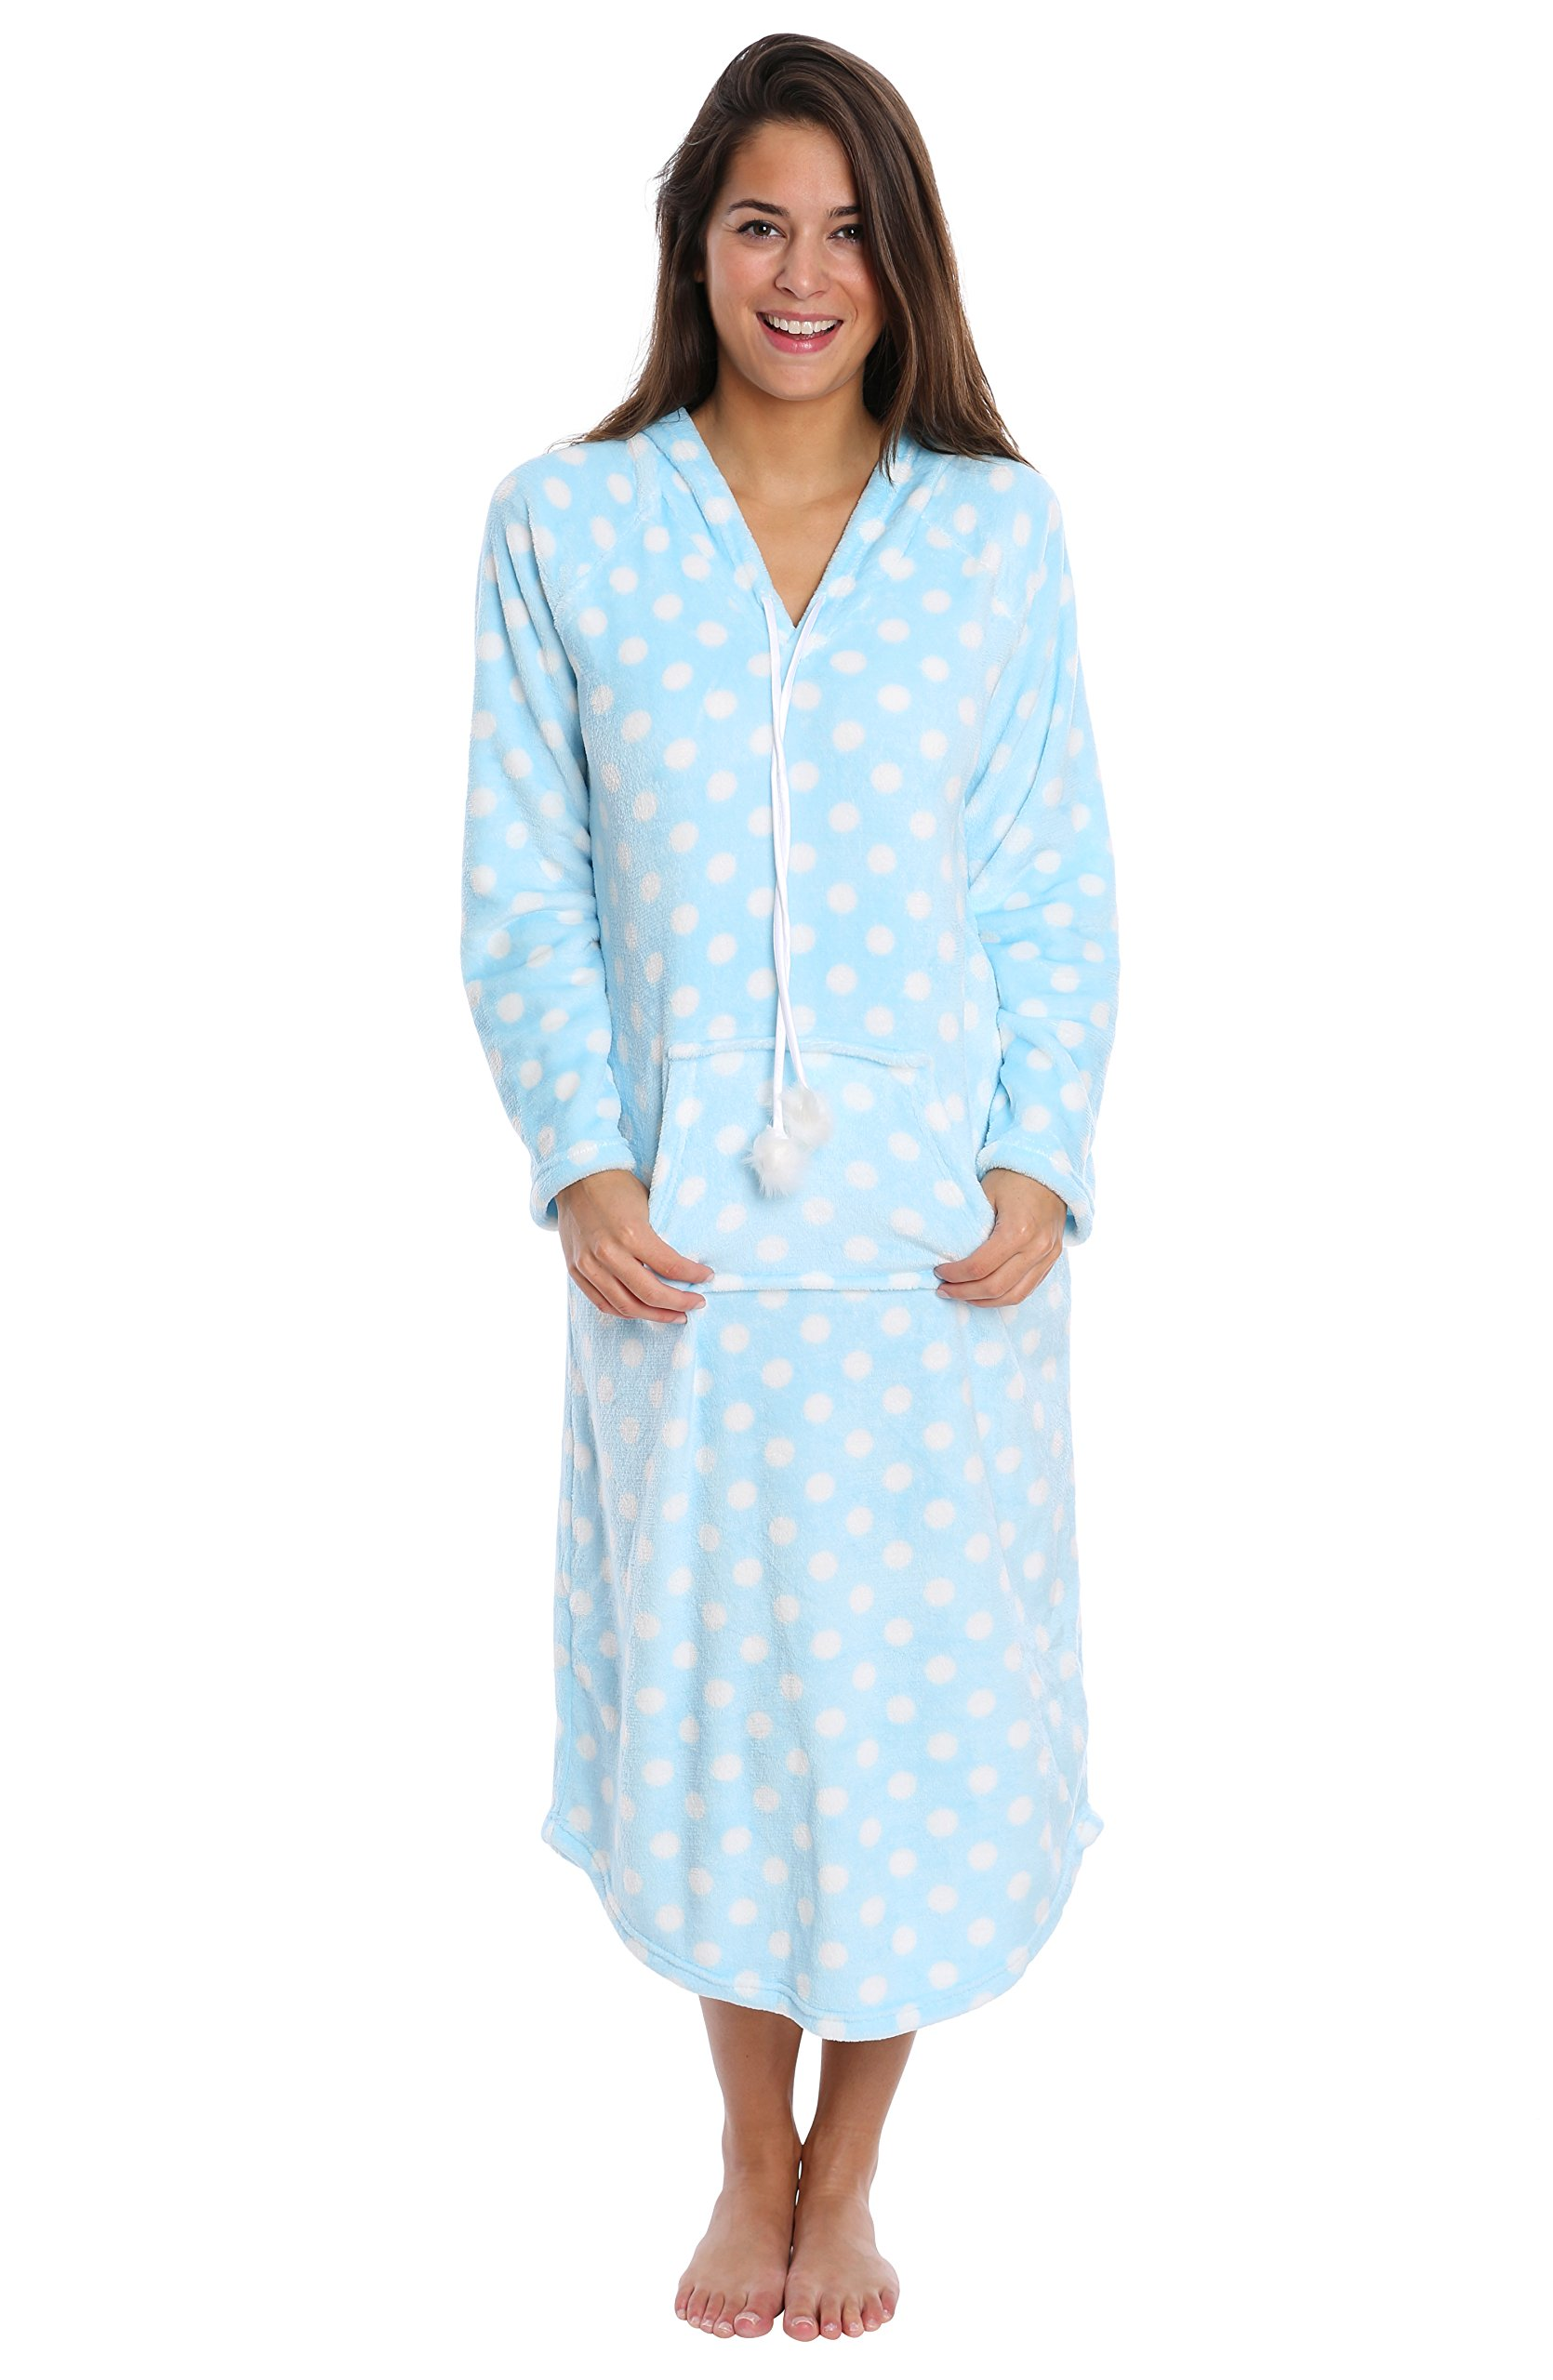 Nouveau Women's Maxi-Style Plush Pullover Sweater - Pajamas for Women - Blue and White Polka Dot, Small